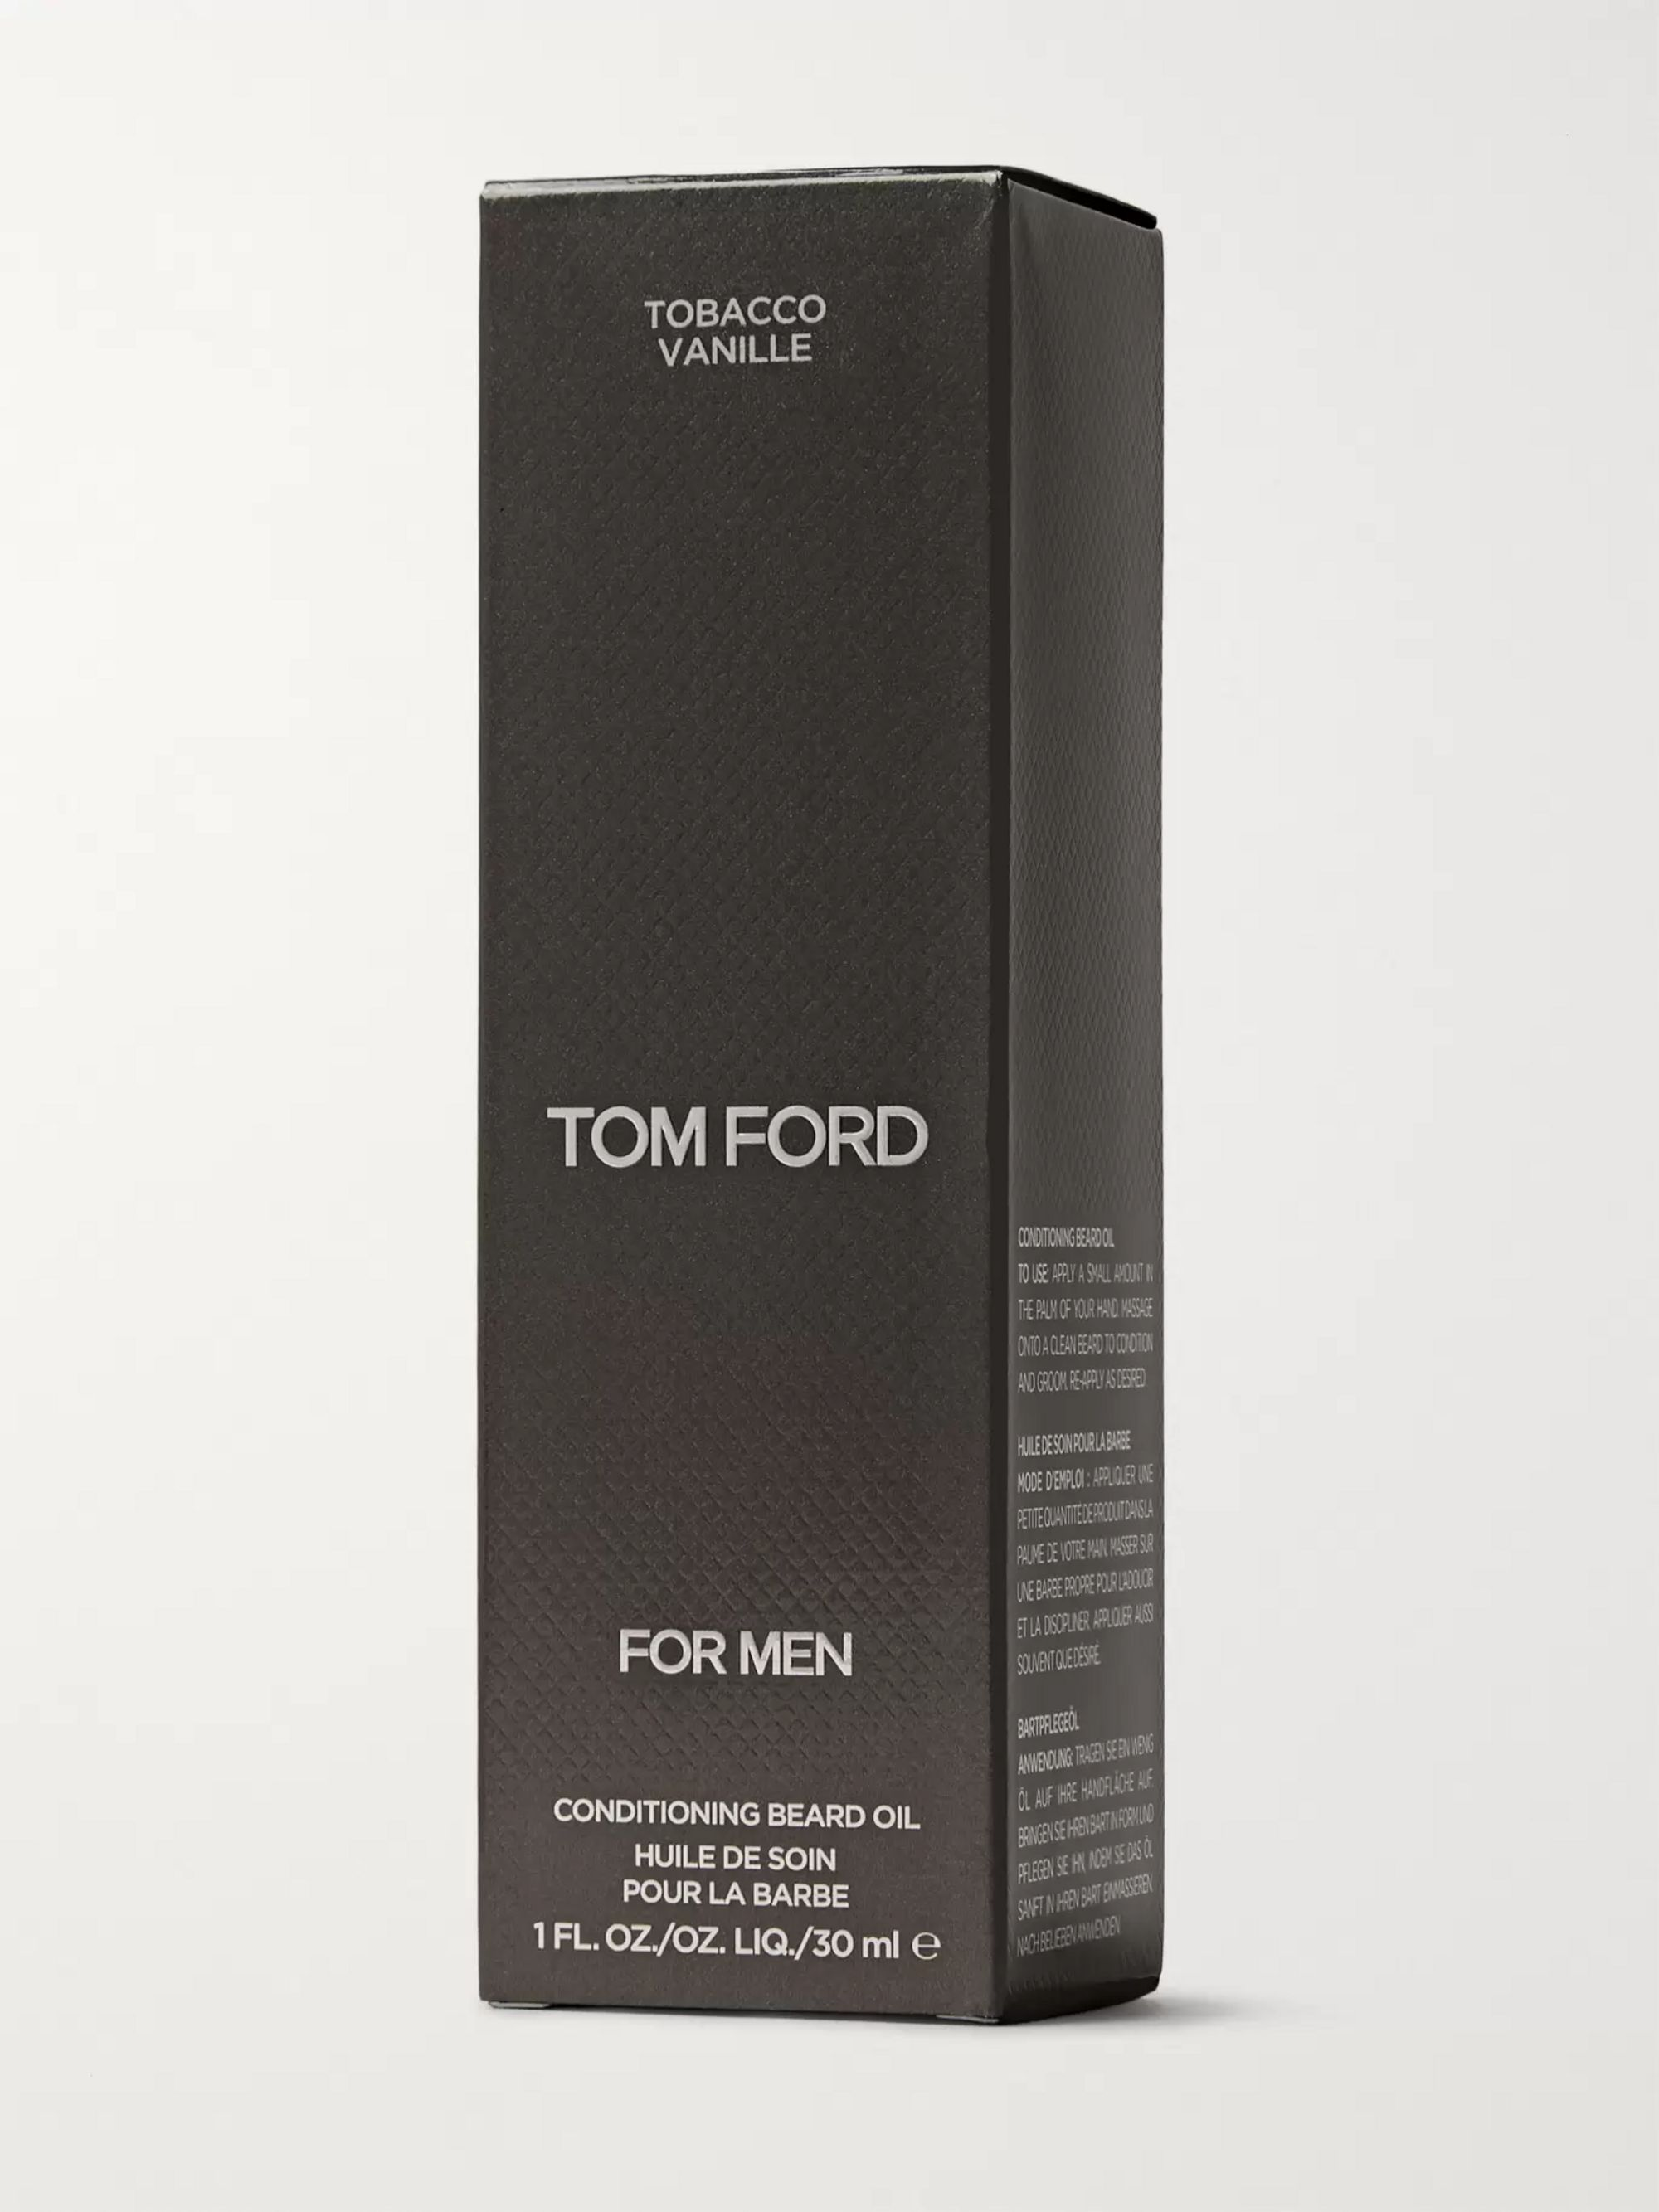 TOM FORD BEAUTY Tobacco Vanille Conditioning Beard Oil, 30ml